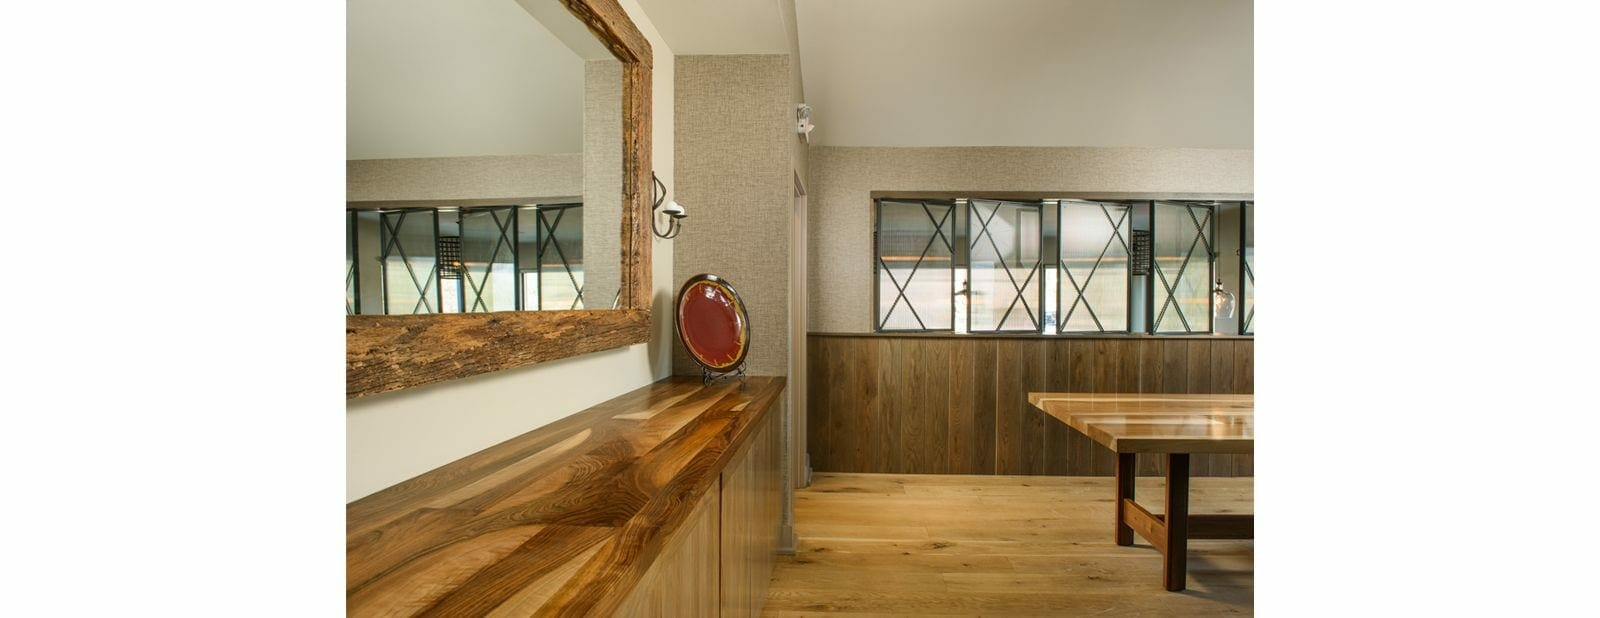 Almshouse custom cabinet and mirror